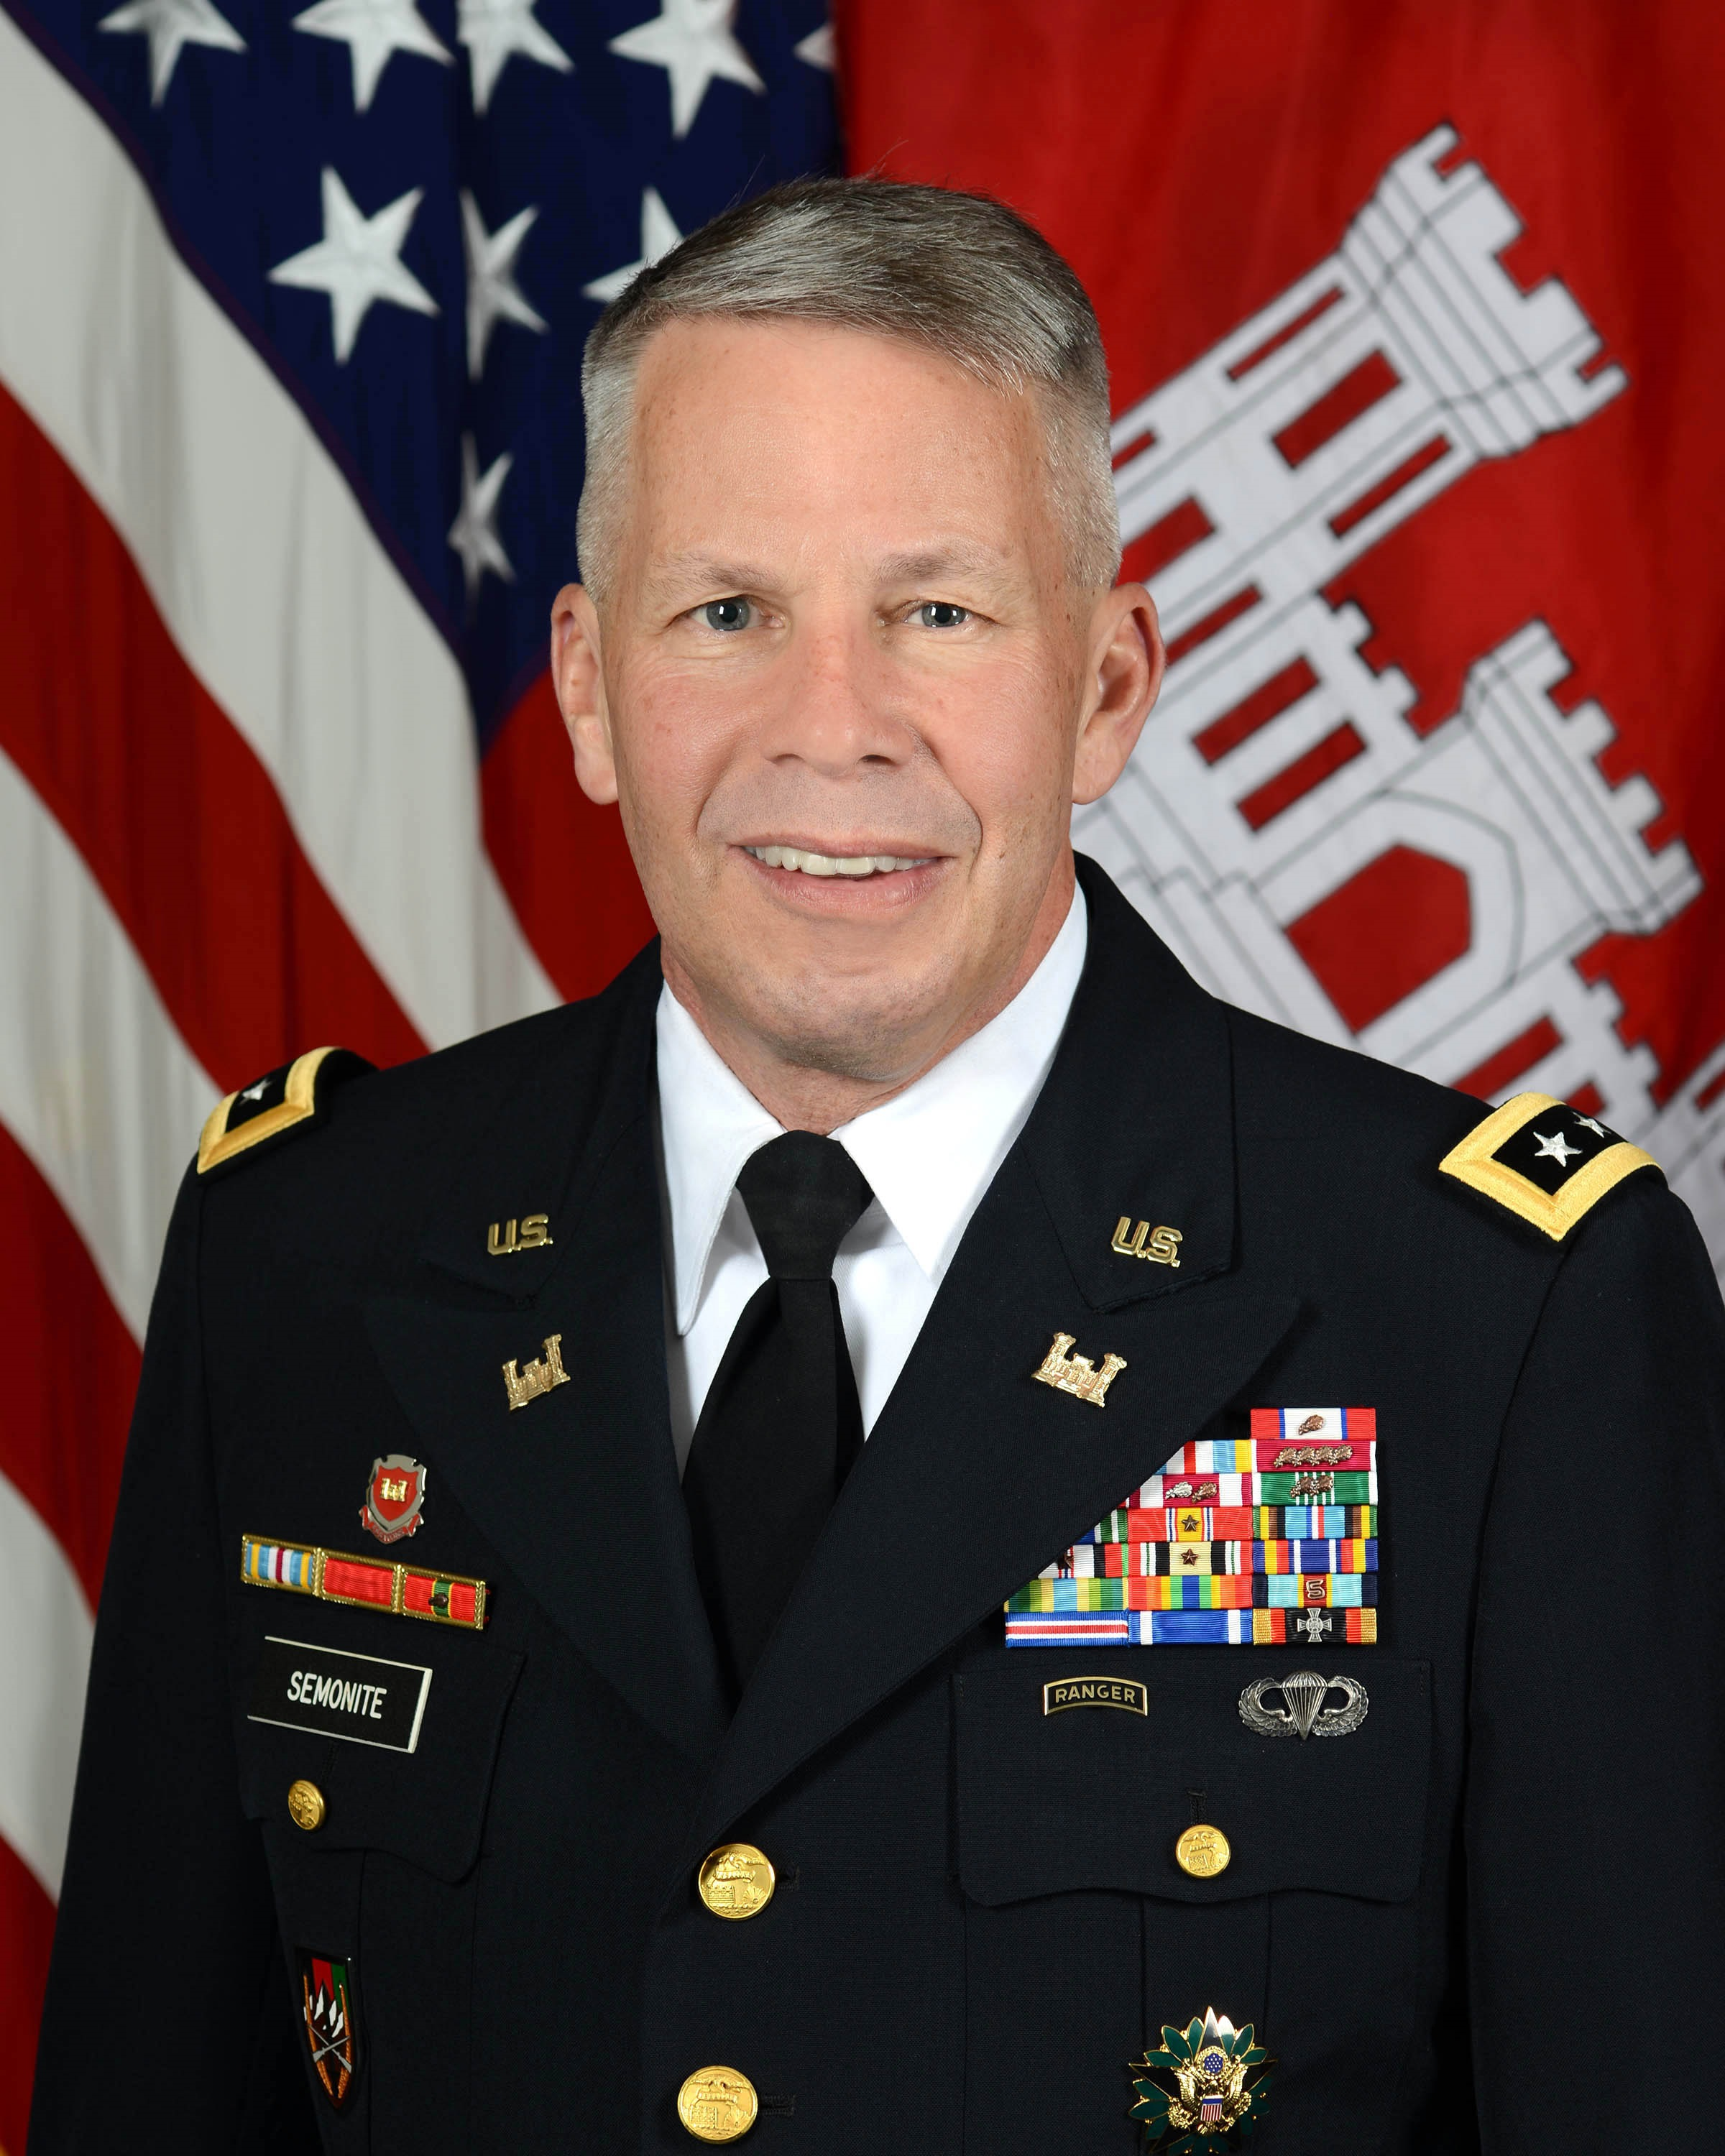 Tom kennedy us army claims service - Official Photo